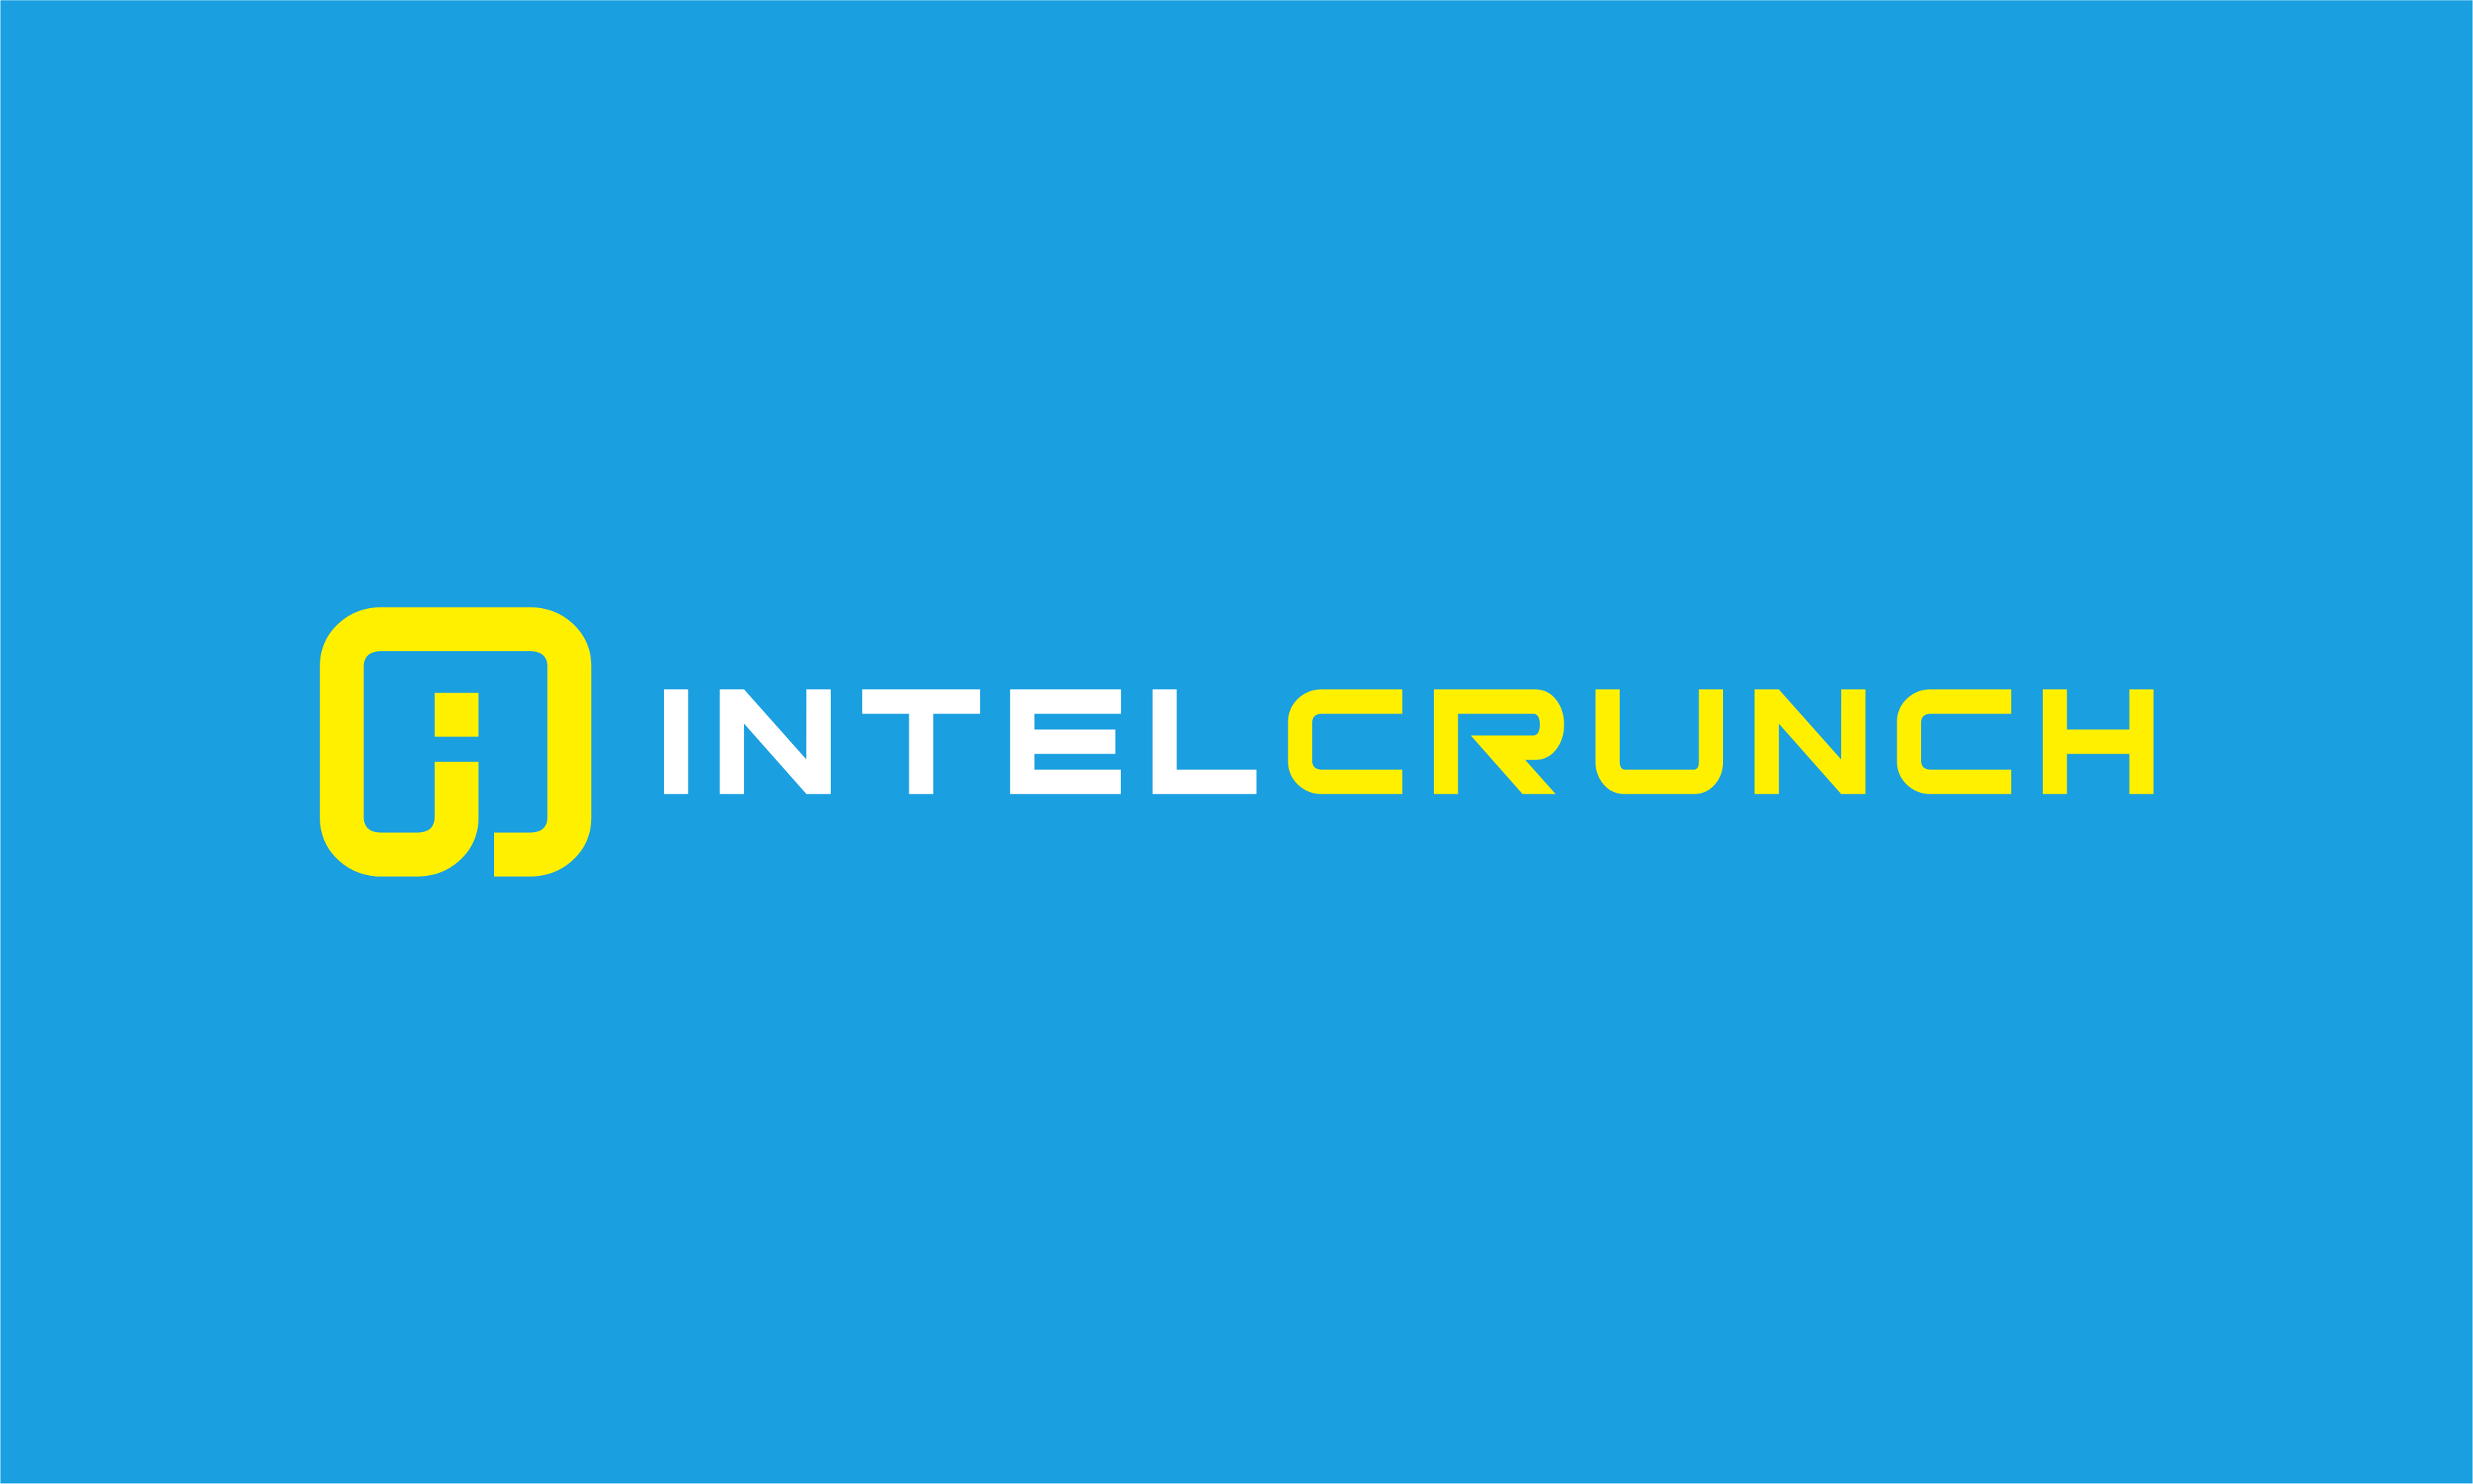 Intelcrunch